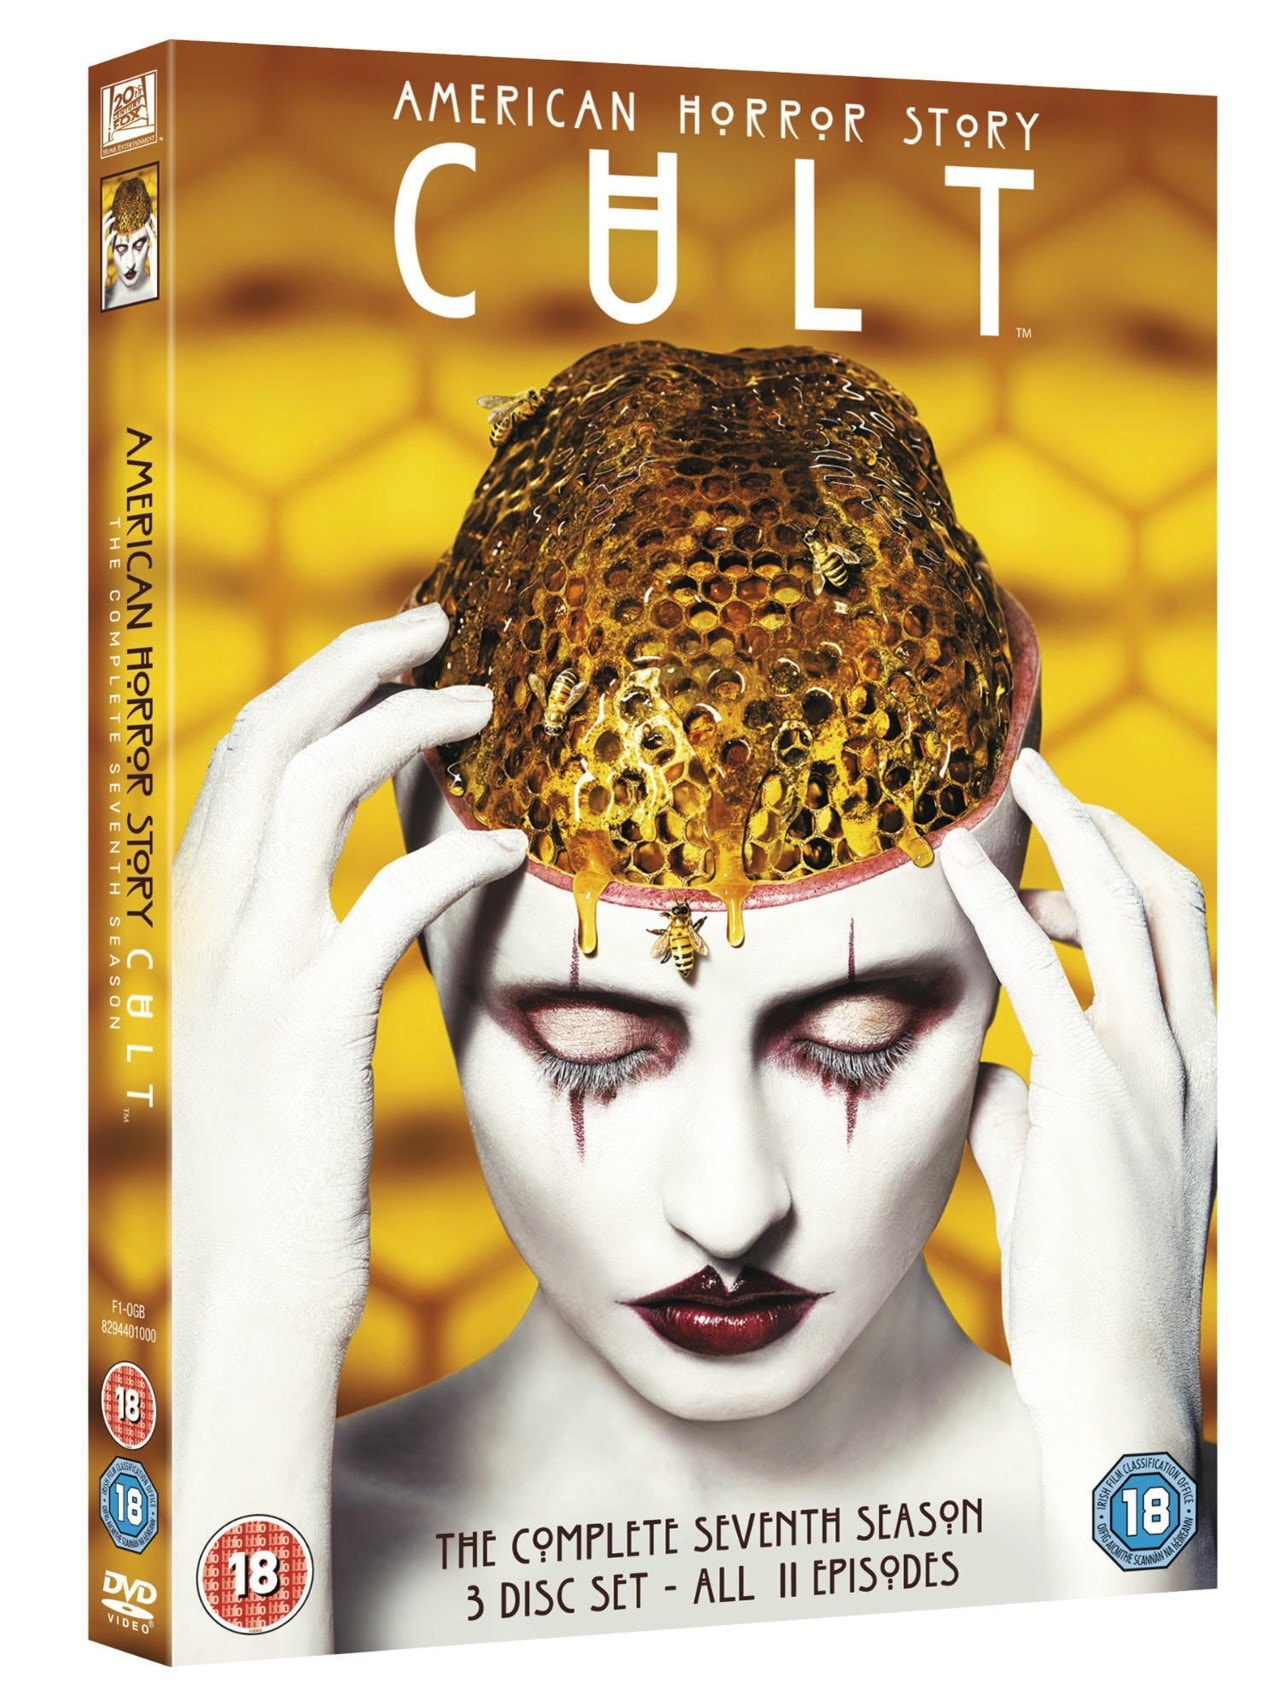 American Horror Story: Cult - The Complete Seventh Season - 2